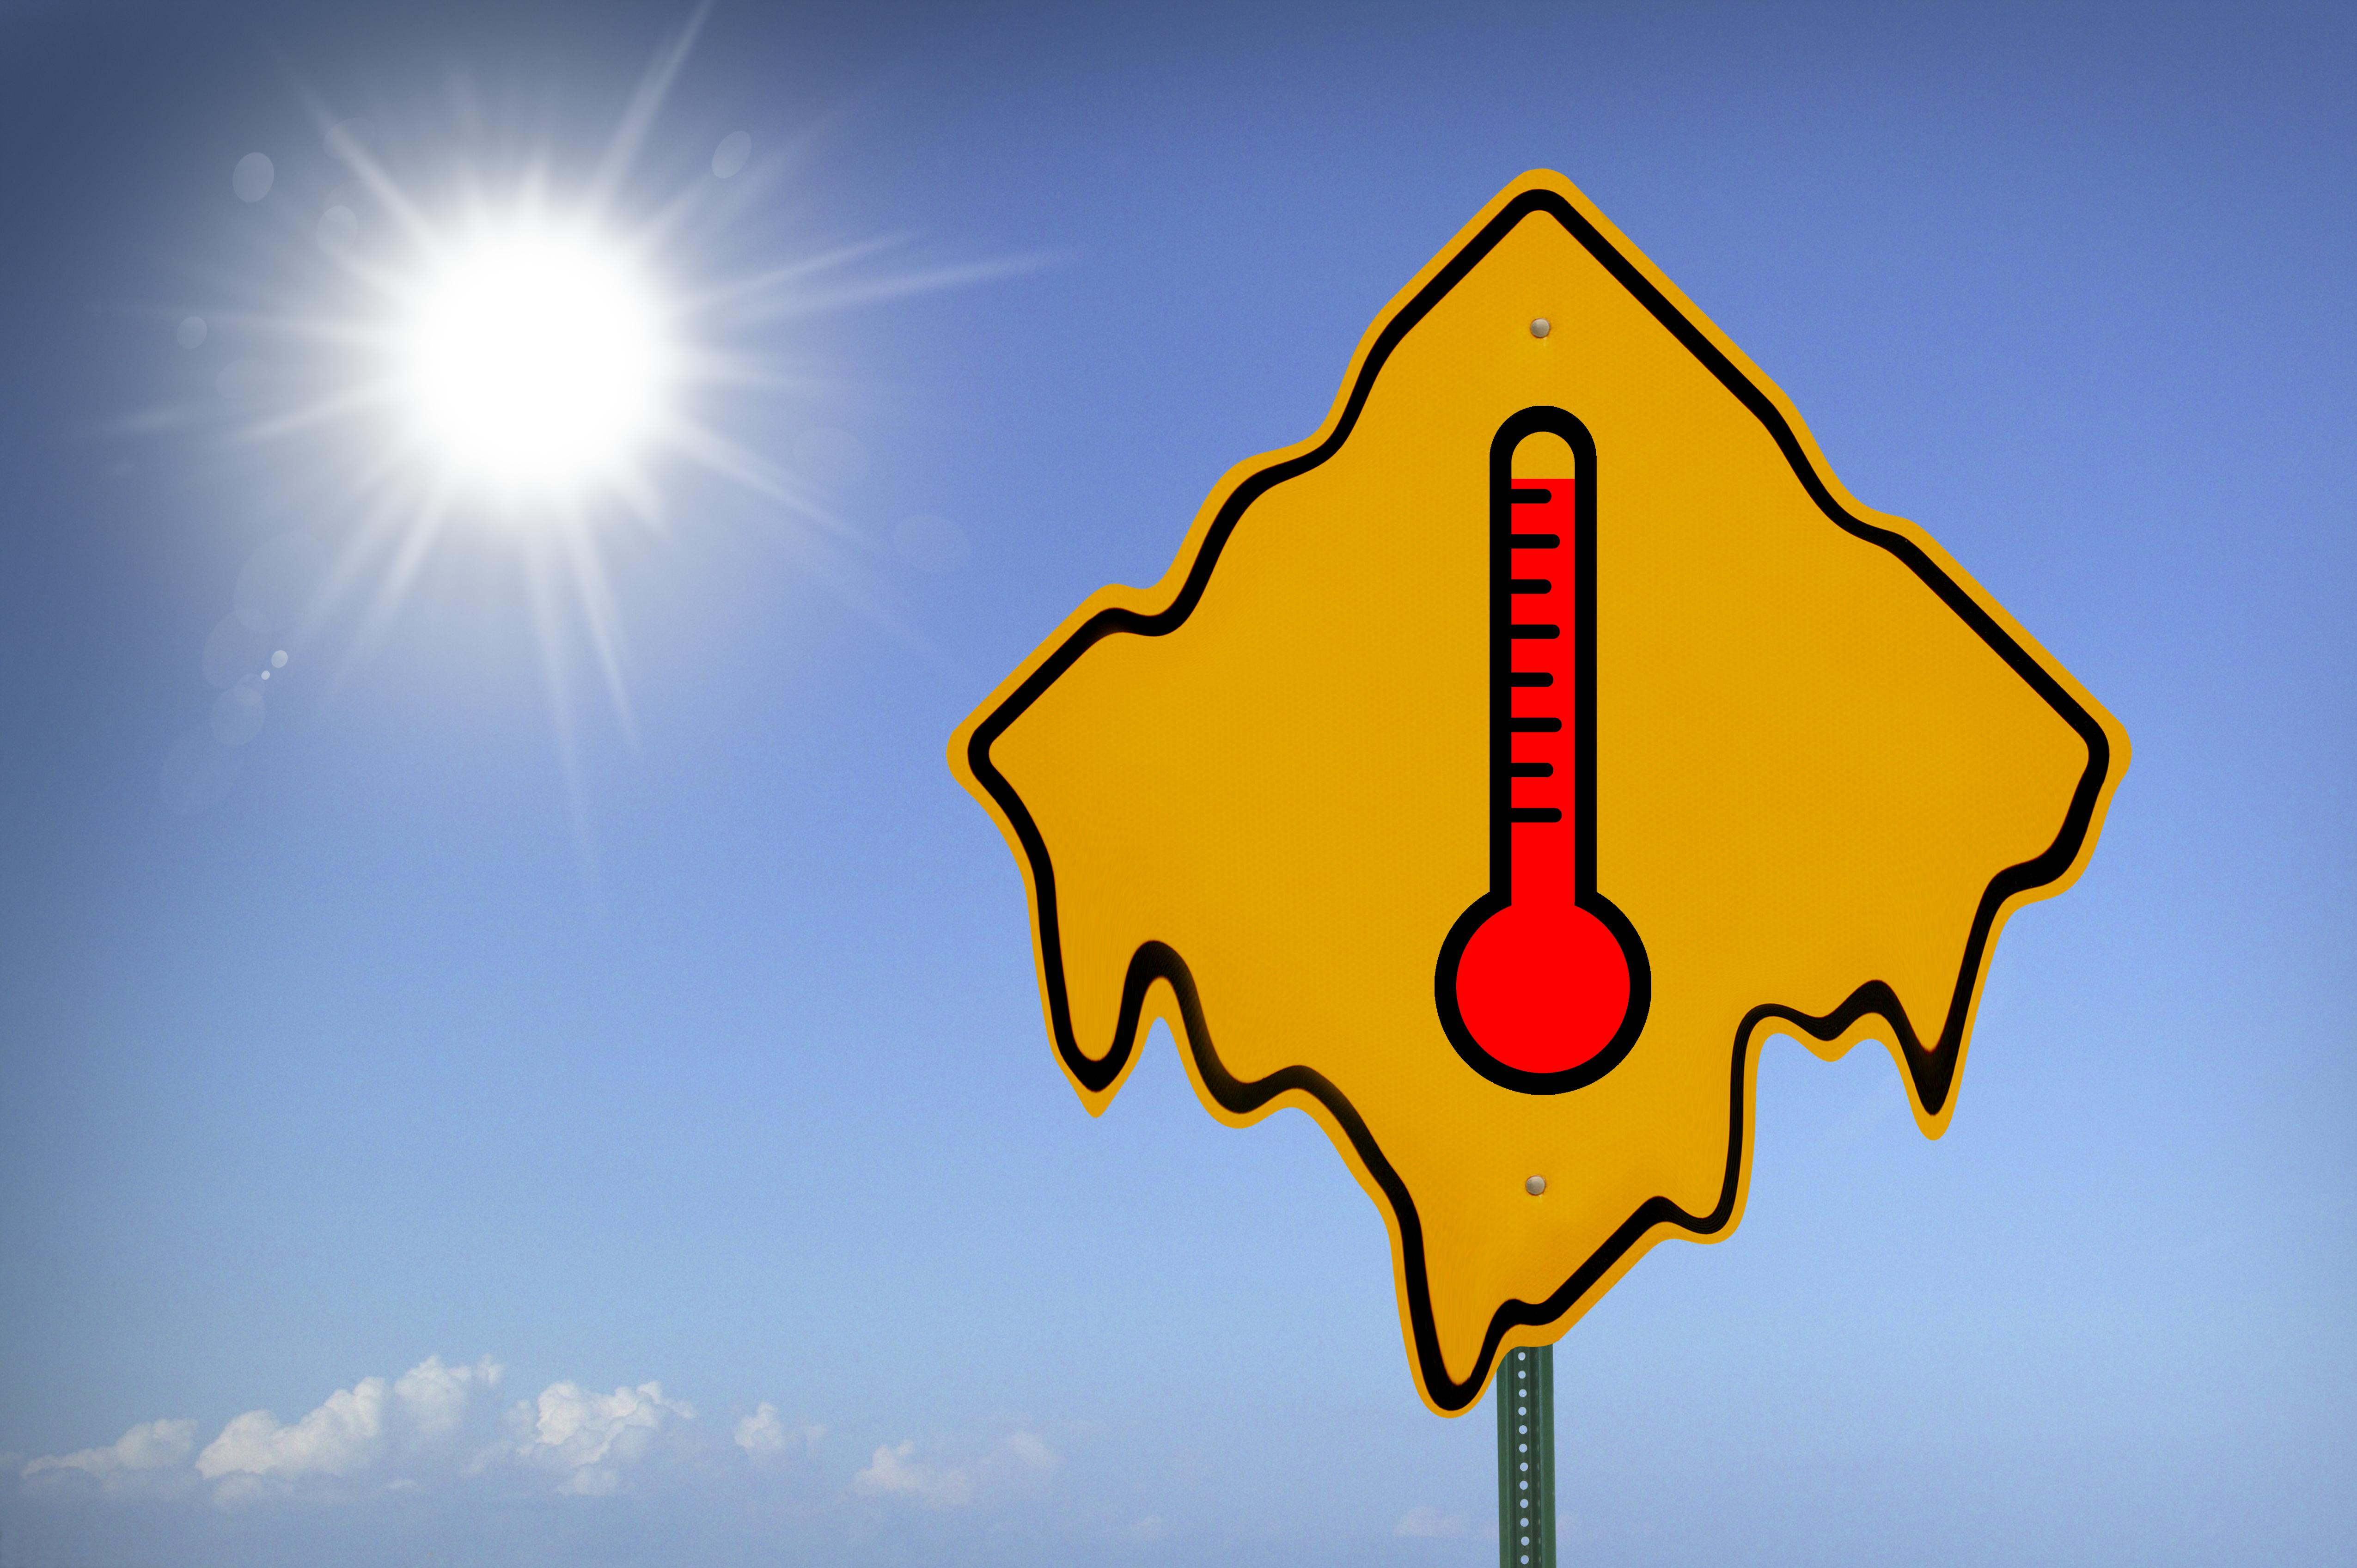 High temperature sign, close-up (digital composite)